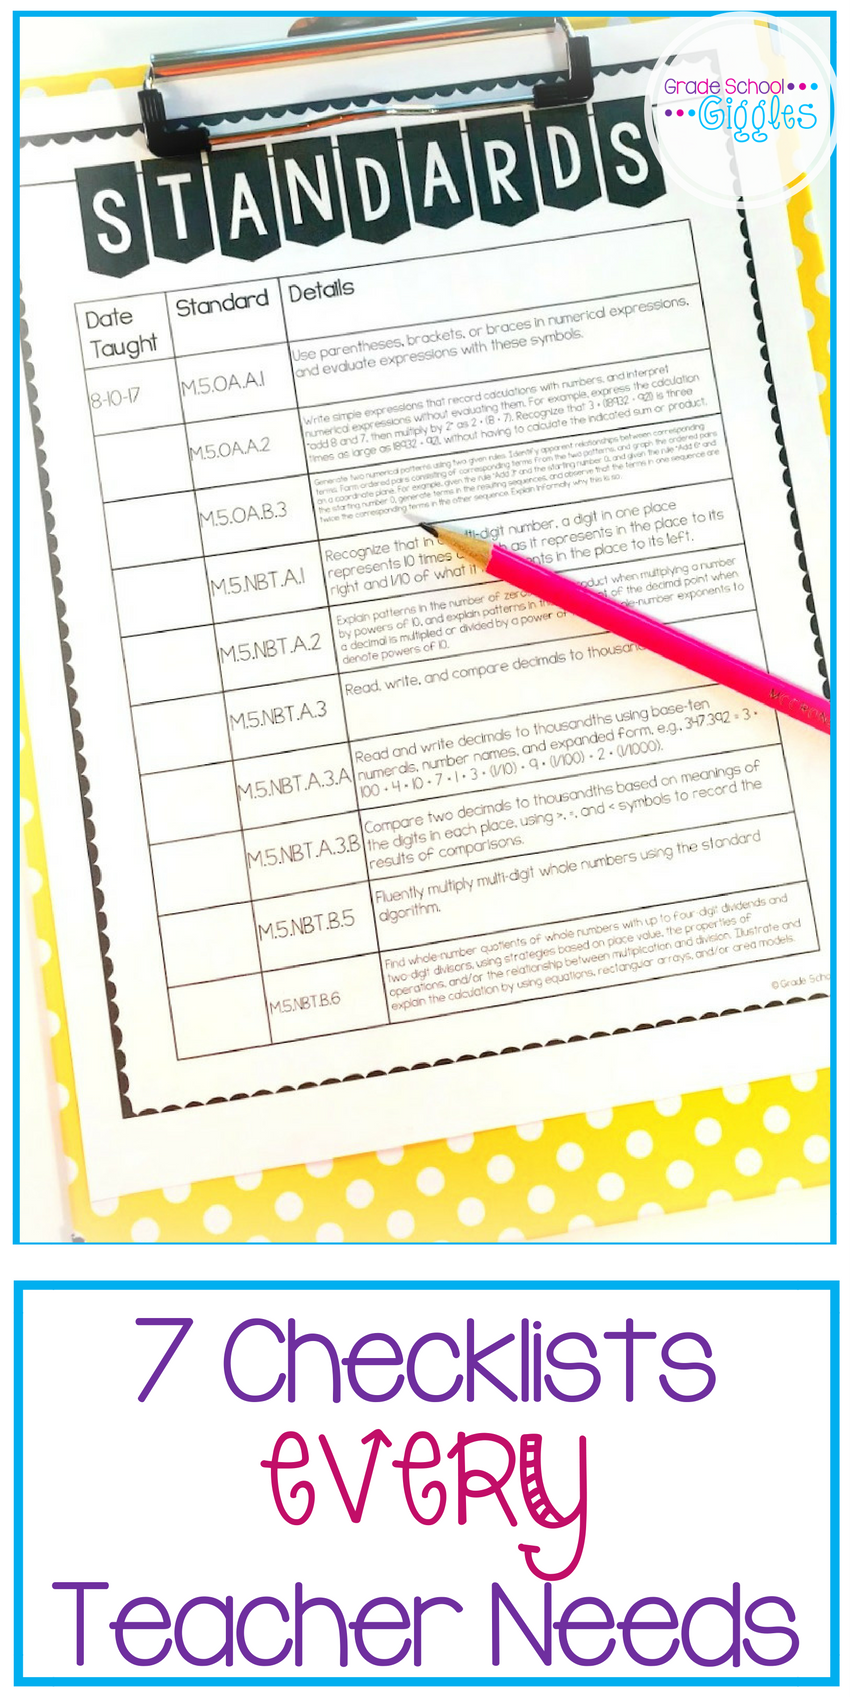 Checklists are one of the easiest tools for organization. Make checklists part of your routine with these free printable templates. Because they're editable and printable you can easily update them with your information to make planning simple whether your tracking homework or organizing your school schedule.